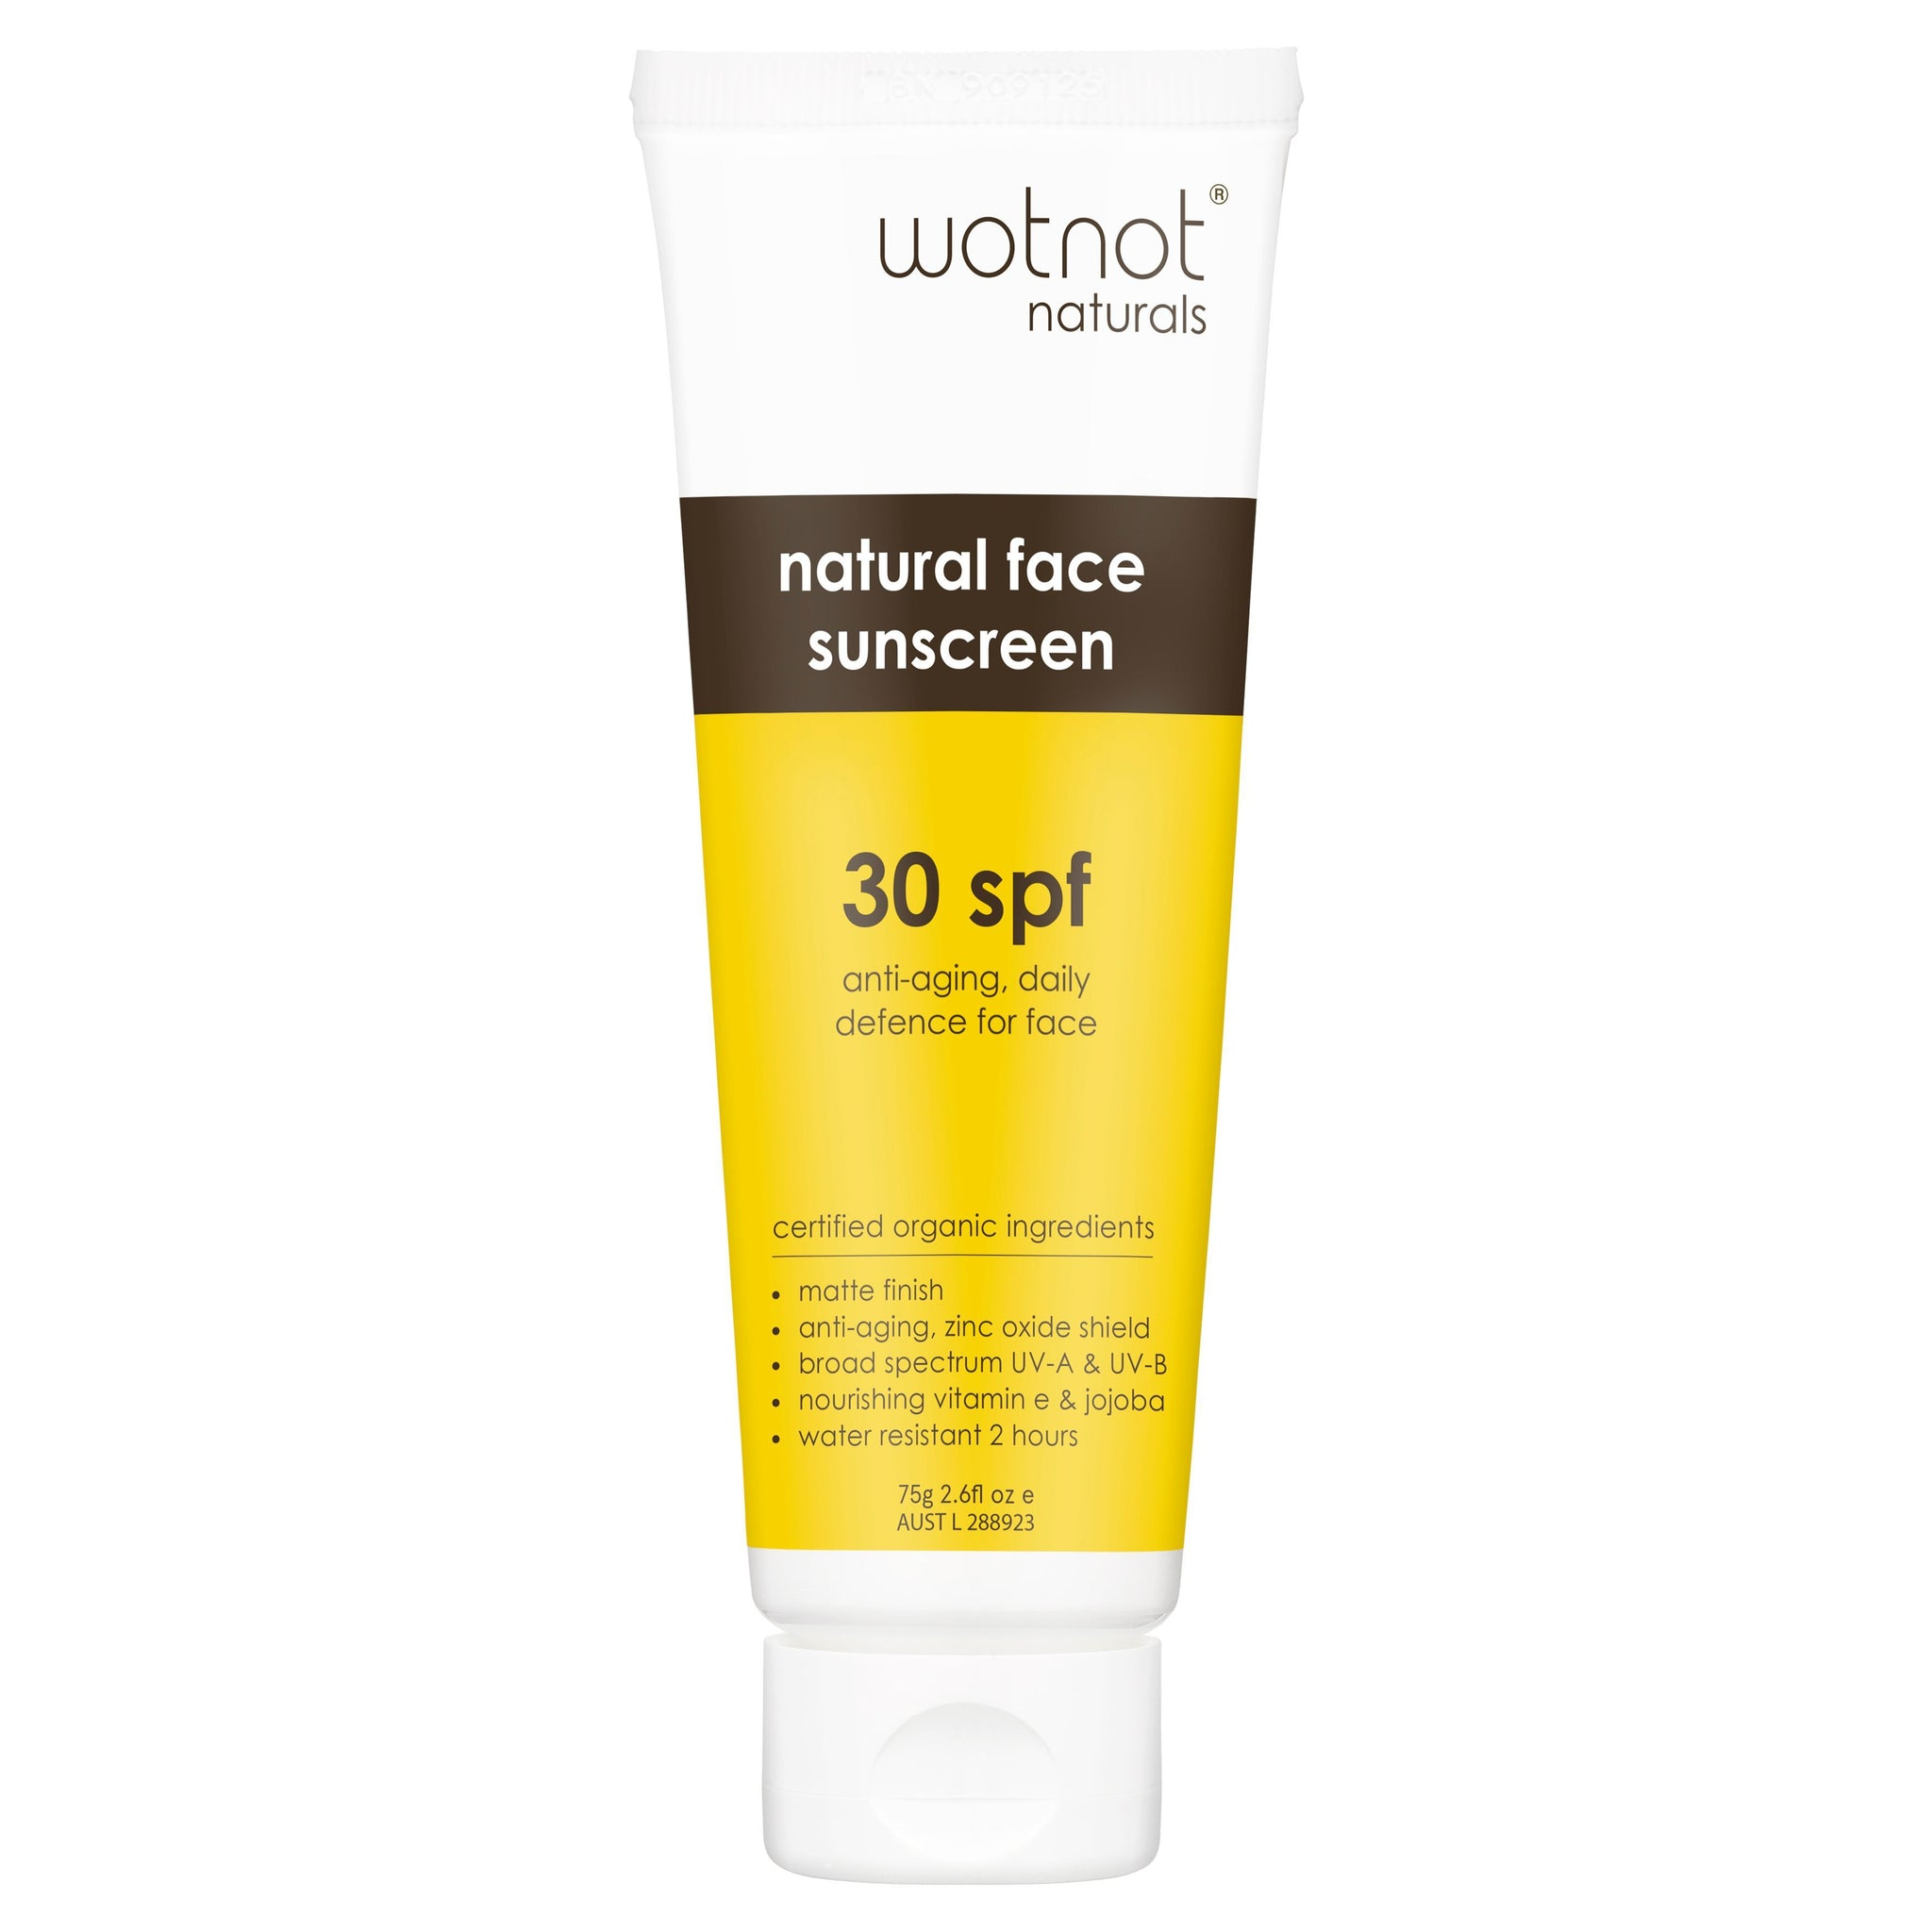 Wotnot Anti-aging Face Sunscreen Spf 30+  75g Wotnot Sunscreen at Little Earth Nest Eco Shop